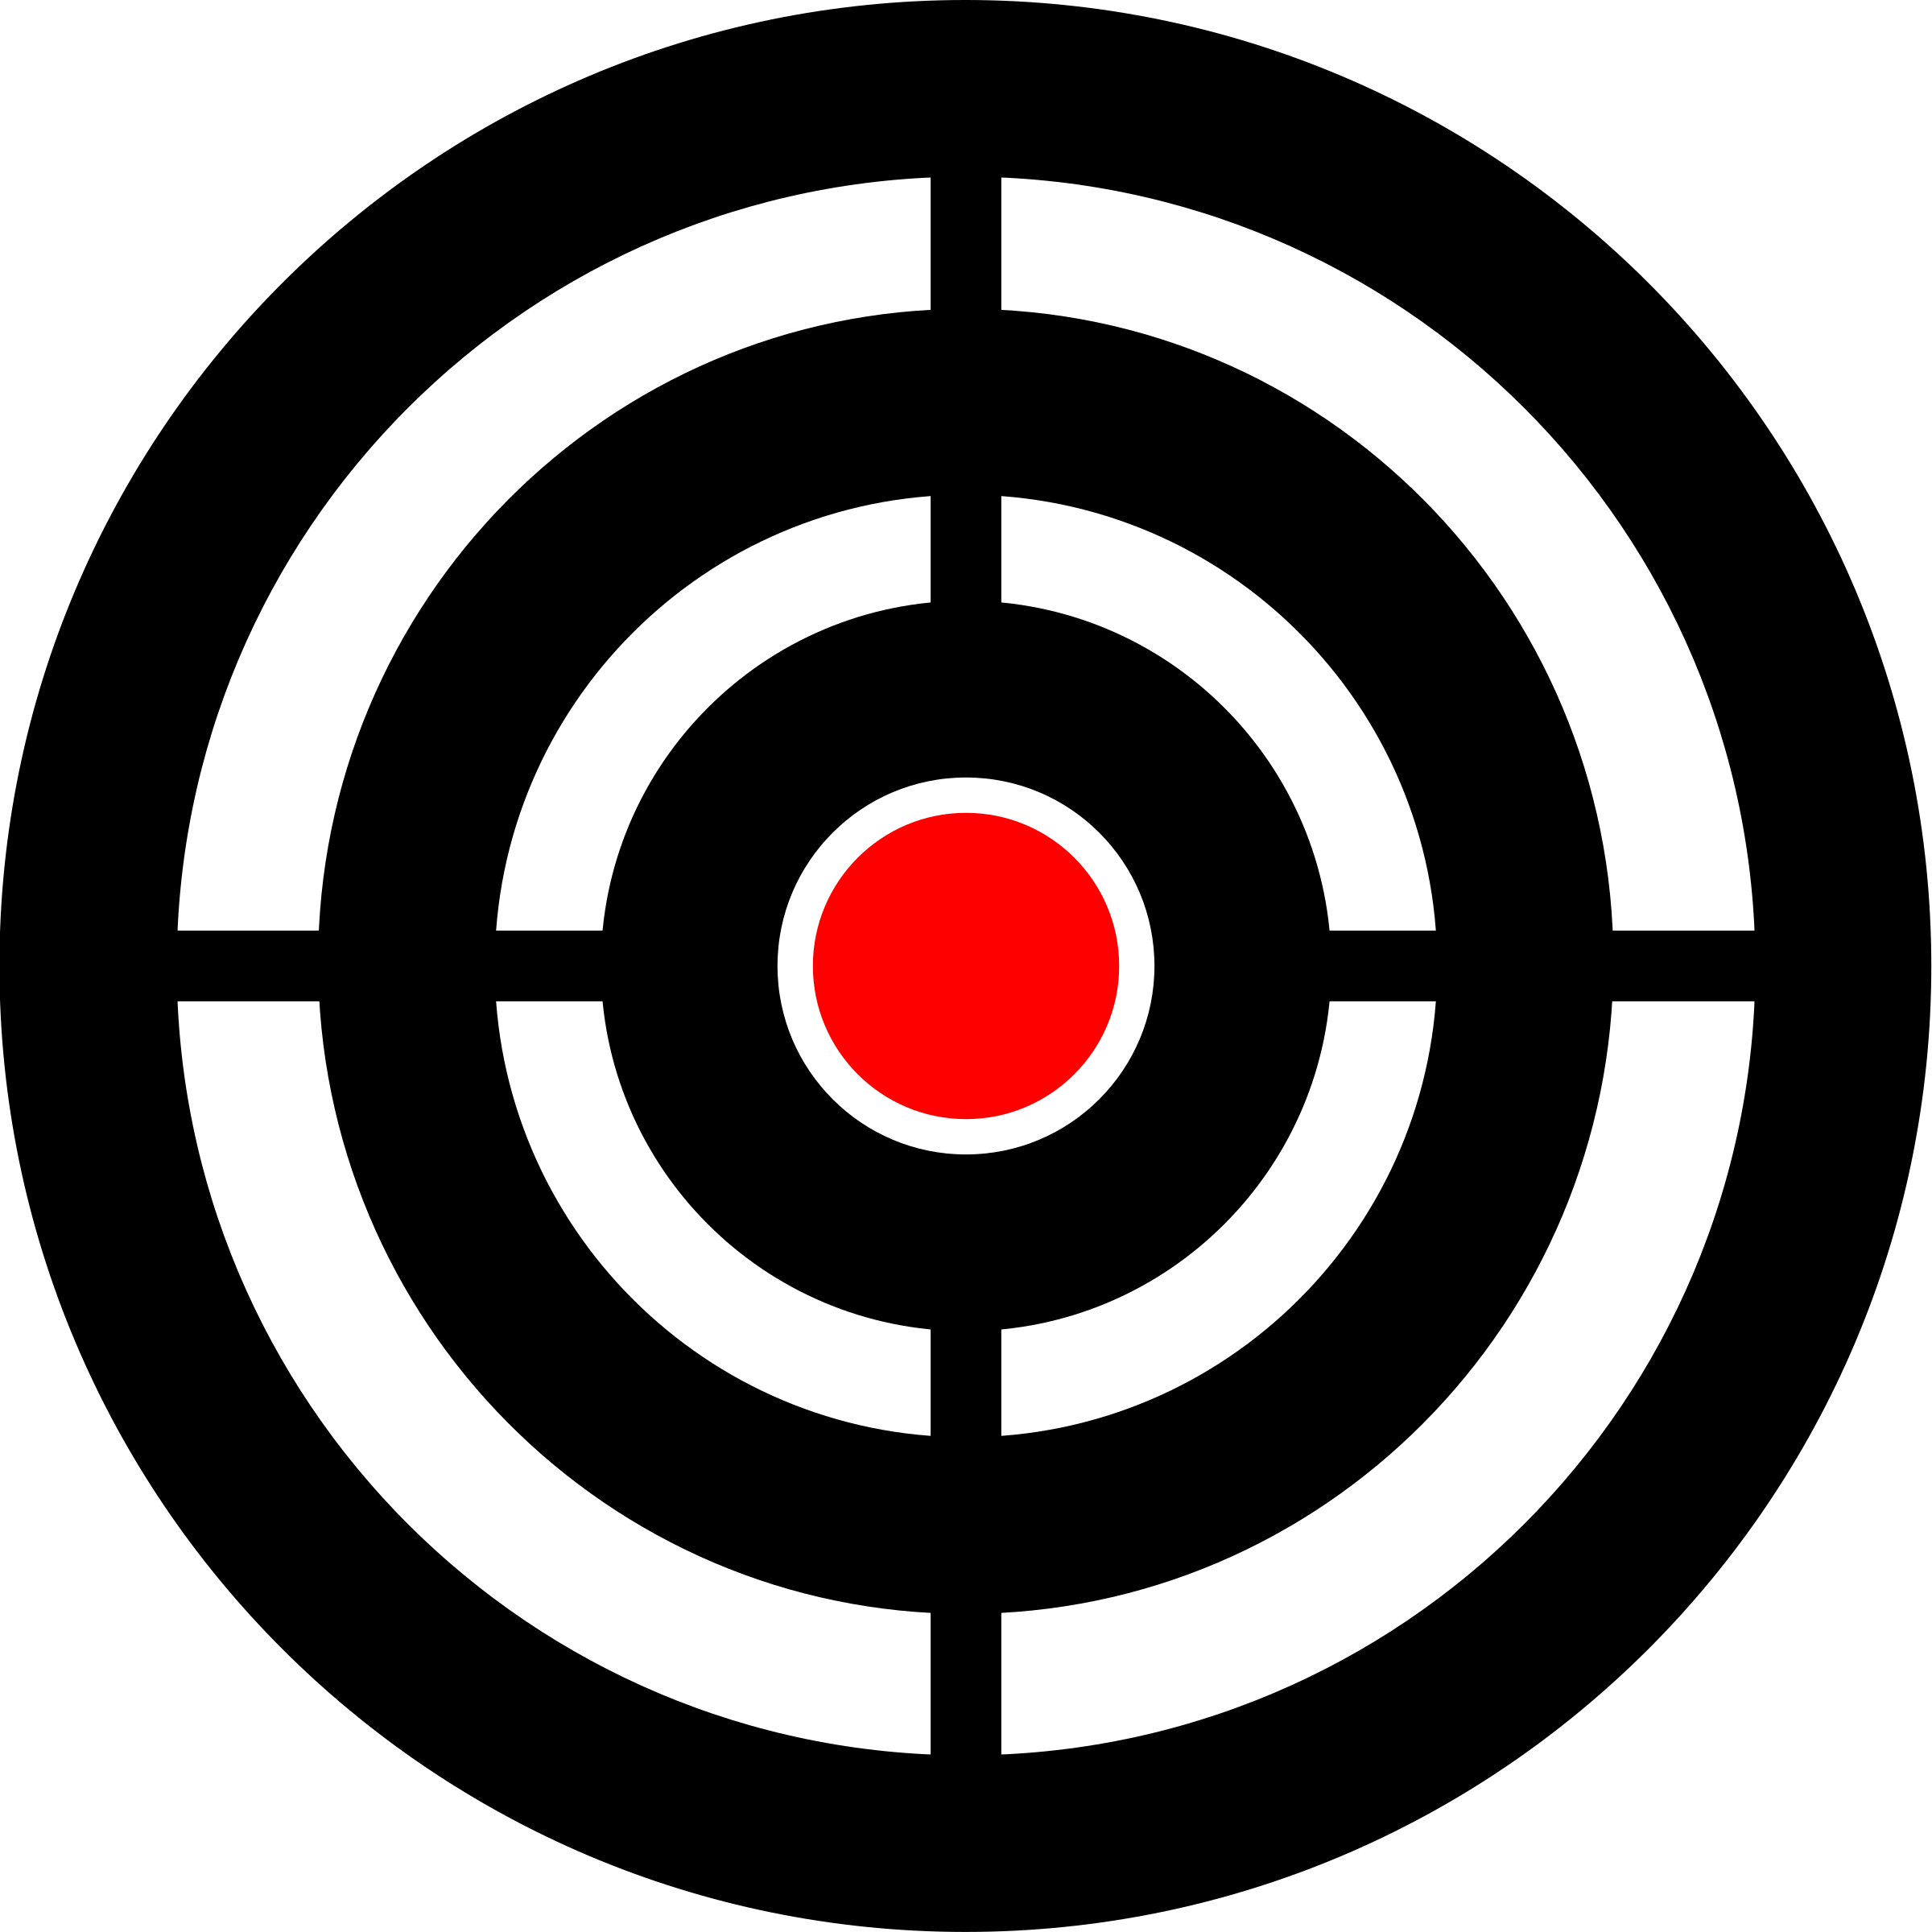 Focus clipart board target. Png images free download